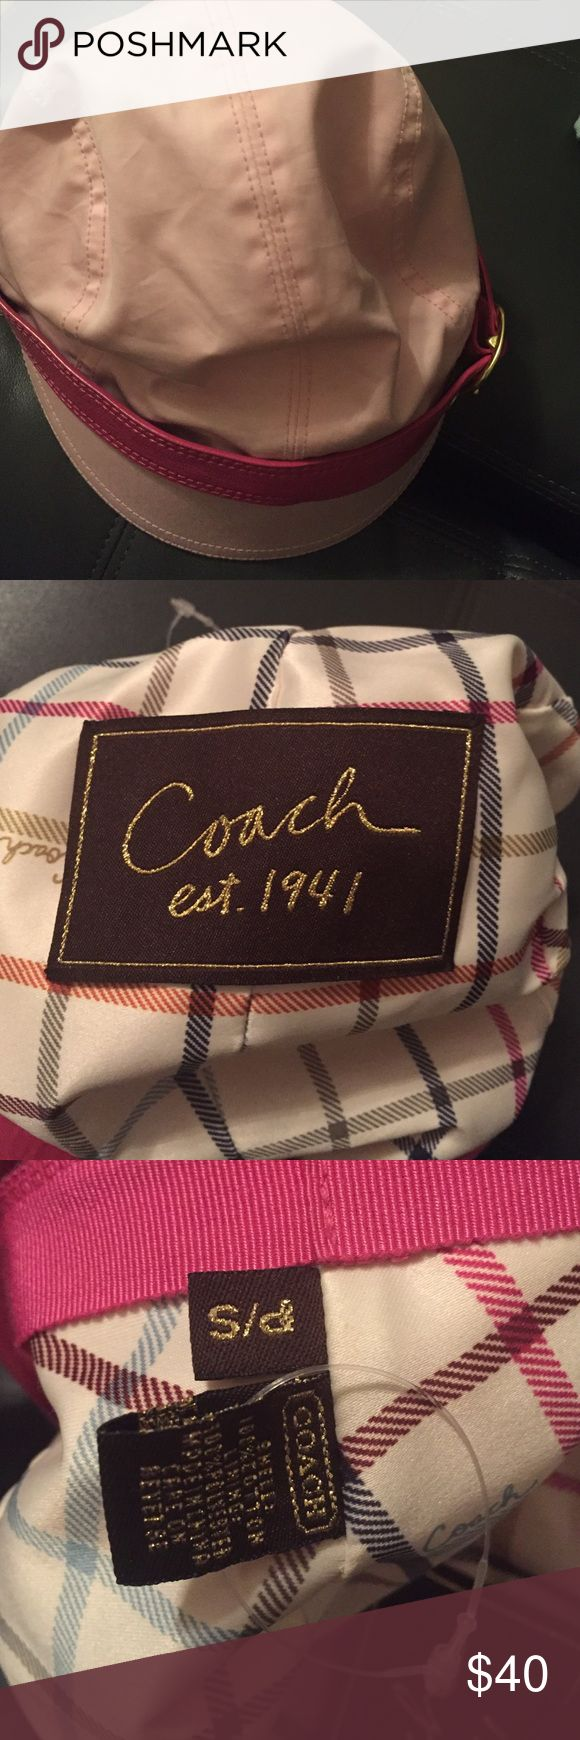 Brand new without tag Coach hat Pink Coach hat. Never worn , tags detached but new. Small stain from storage. See picture. Make an offer Coach Accessories Hats